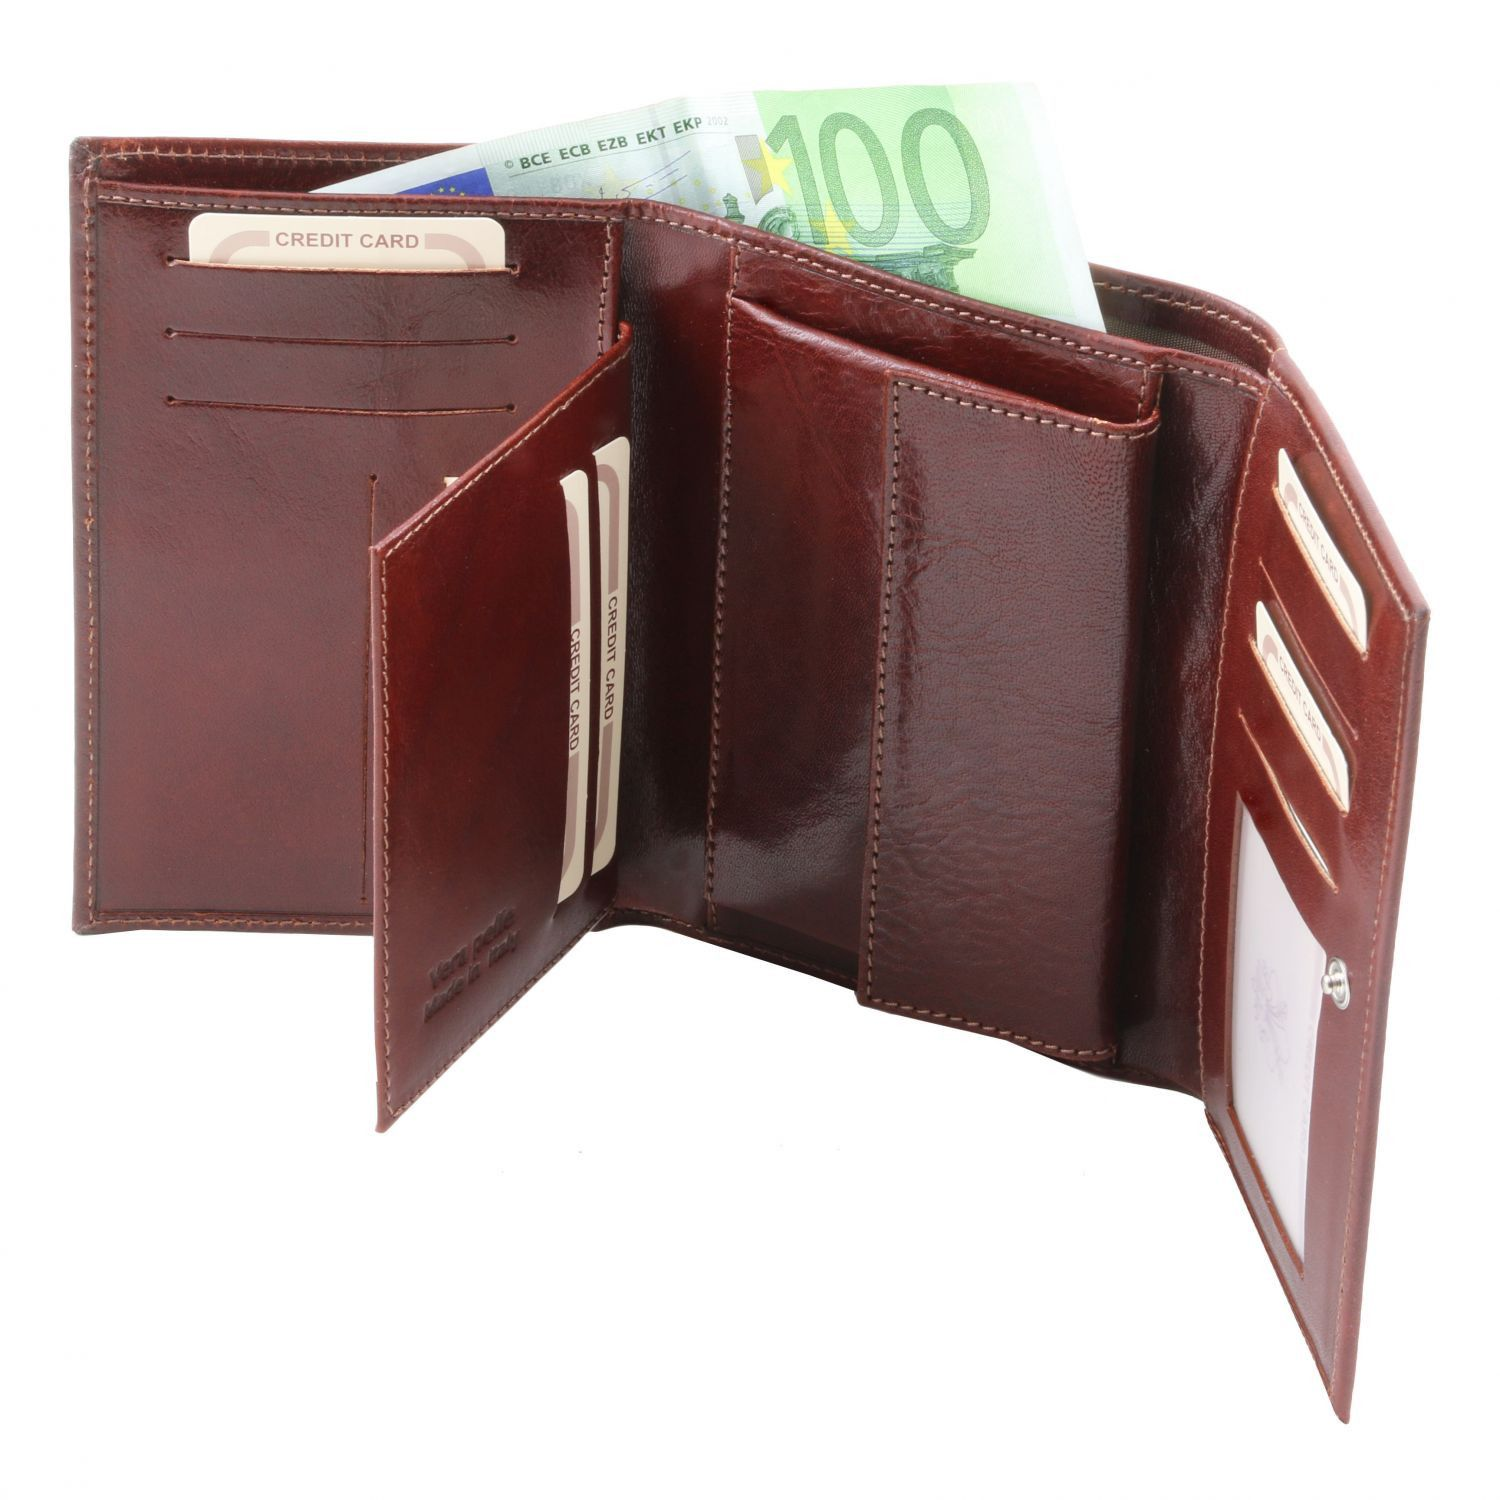 Exclusive leather wallet for women (TL141314) - Leather wallets for women | DILUSSOBAGS